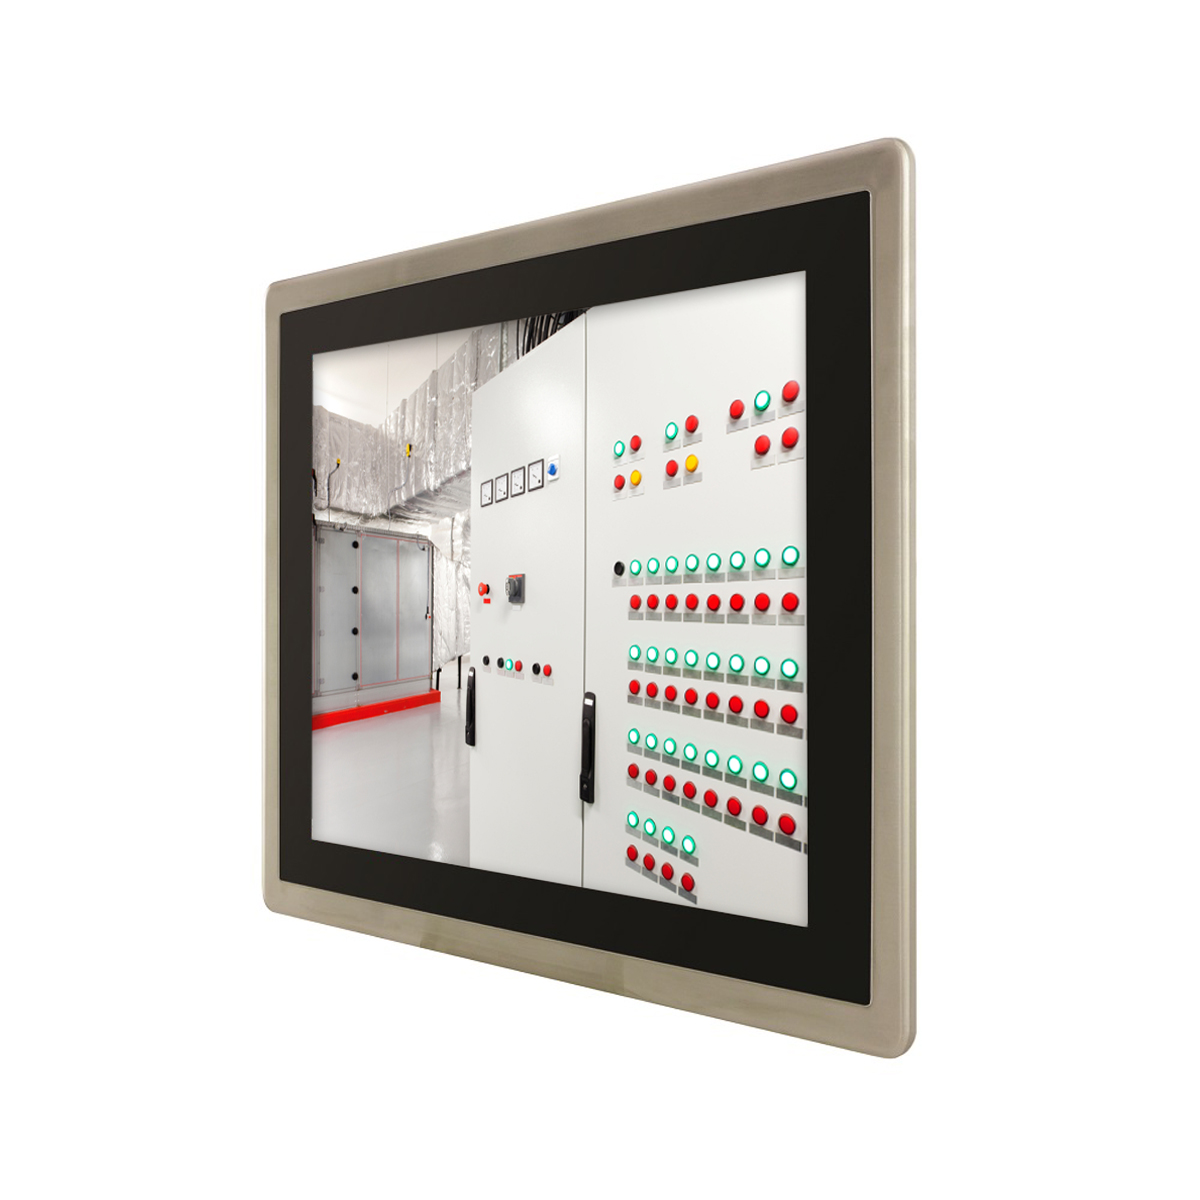 HMI Panel PC IEC 61850-3 and IEEE-1613 Substation Automation